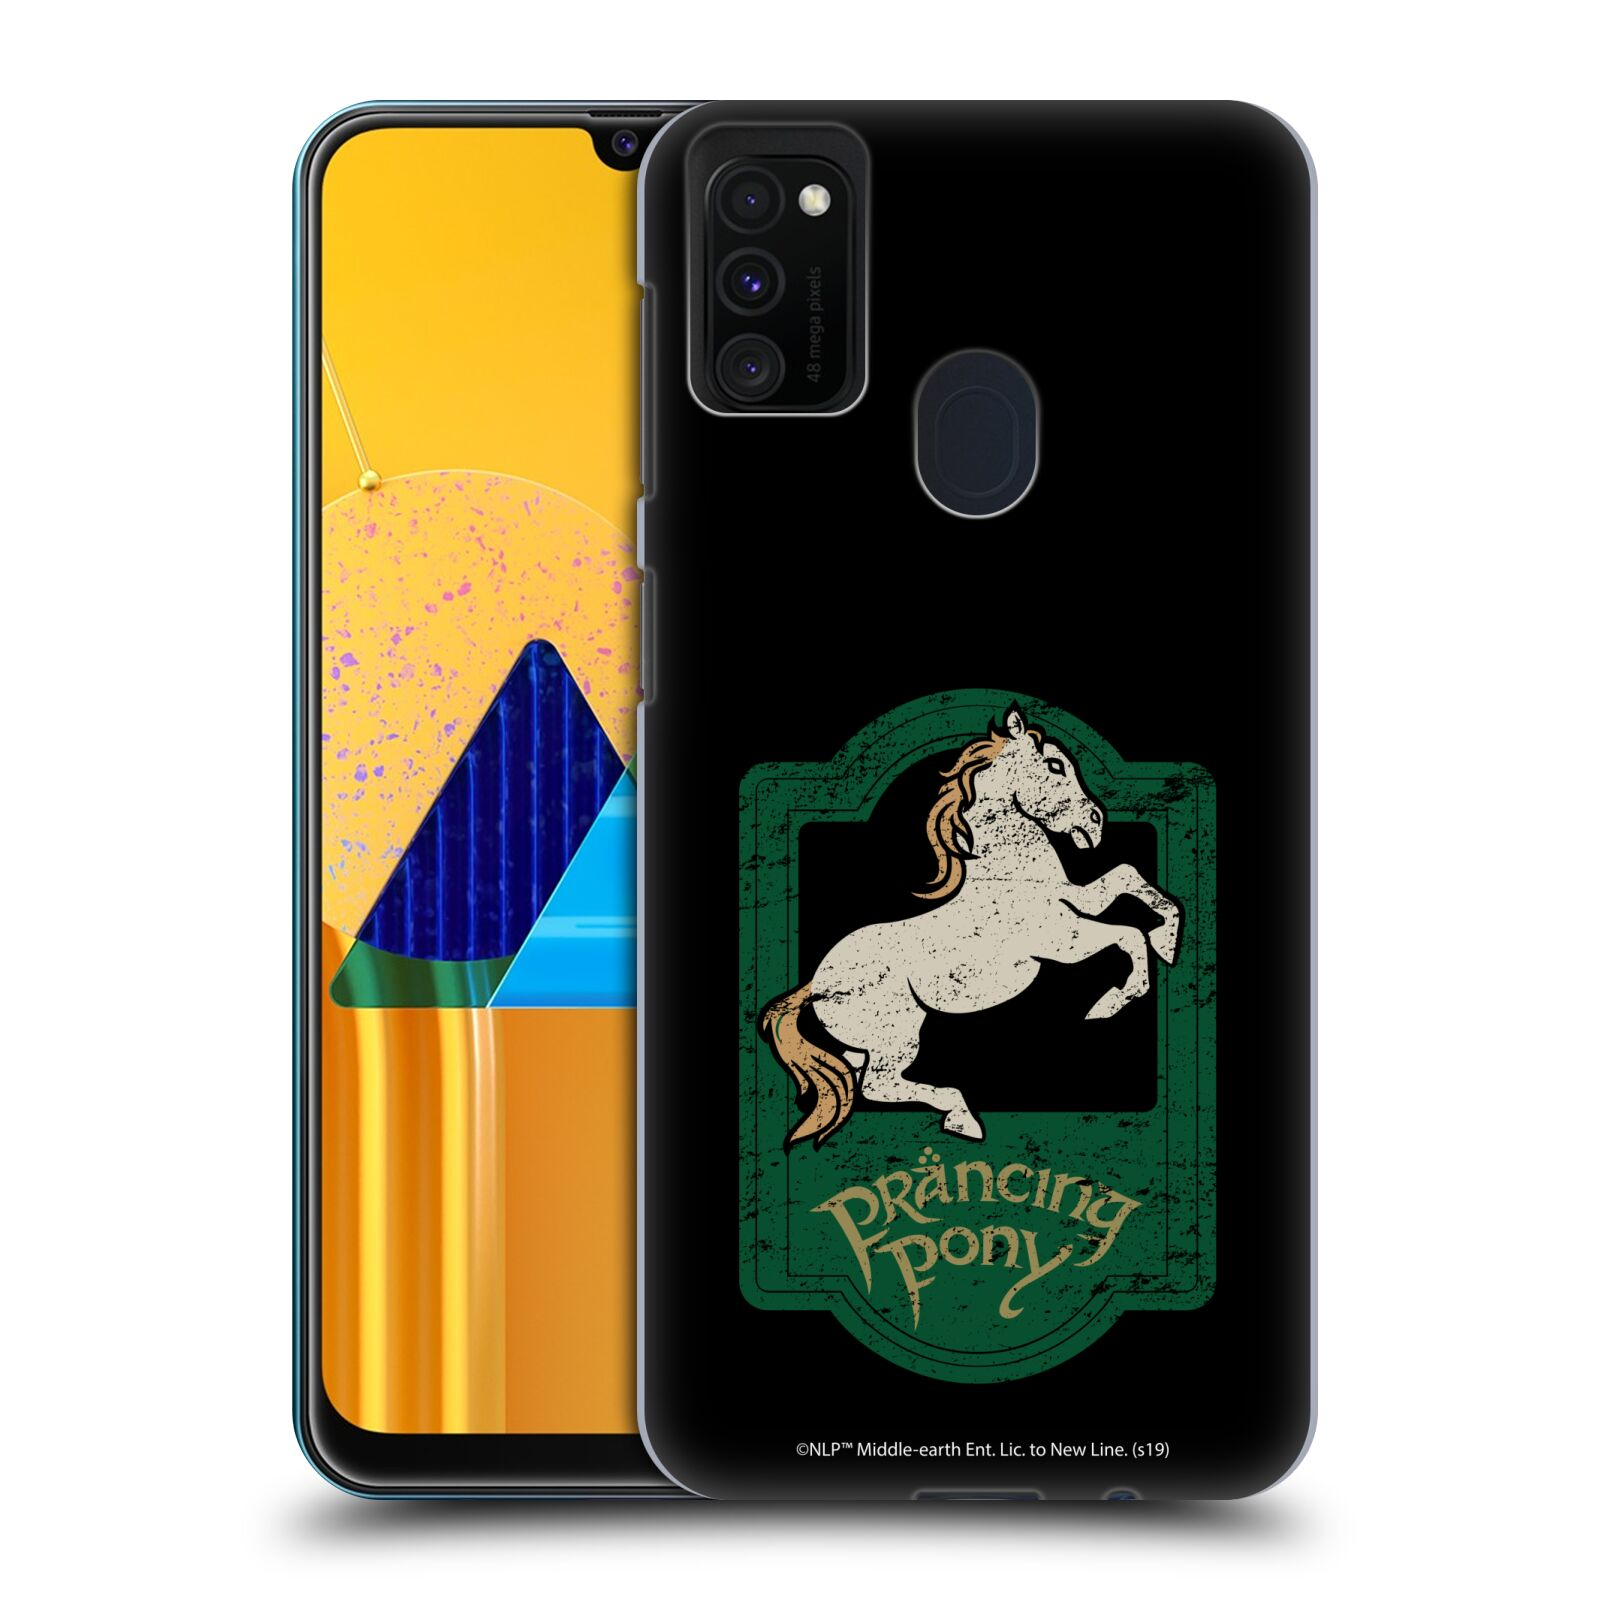 Official The Lord Of The Rings: The Fellowship Of The Ring Graphics Prancing Pony Case for Samsung Galaxy M30s (2019)